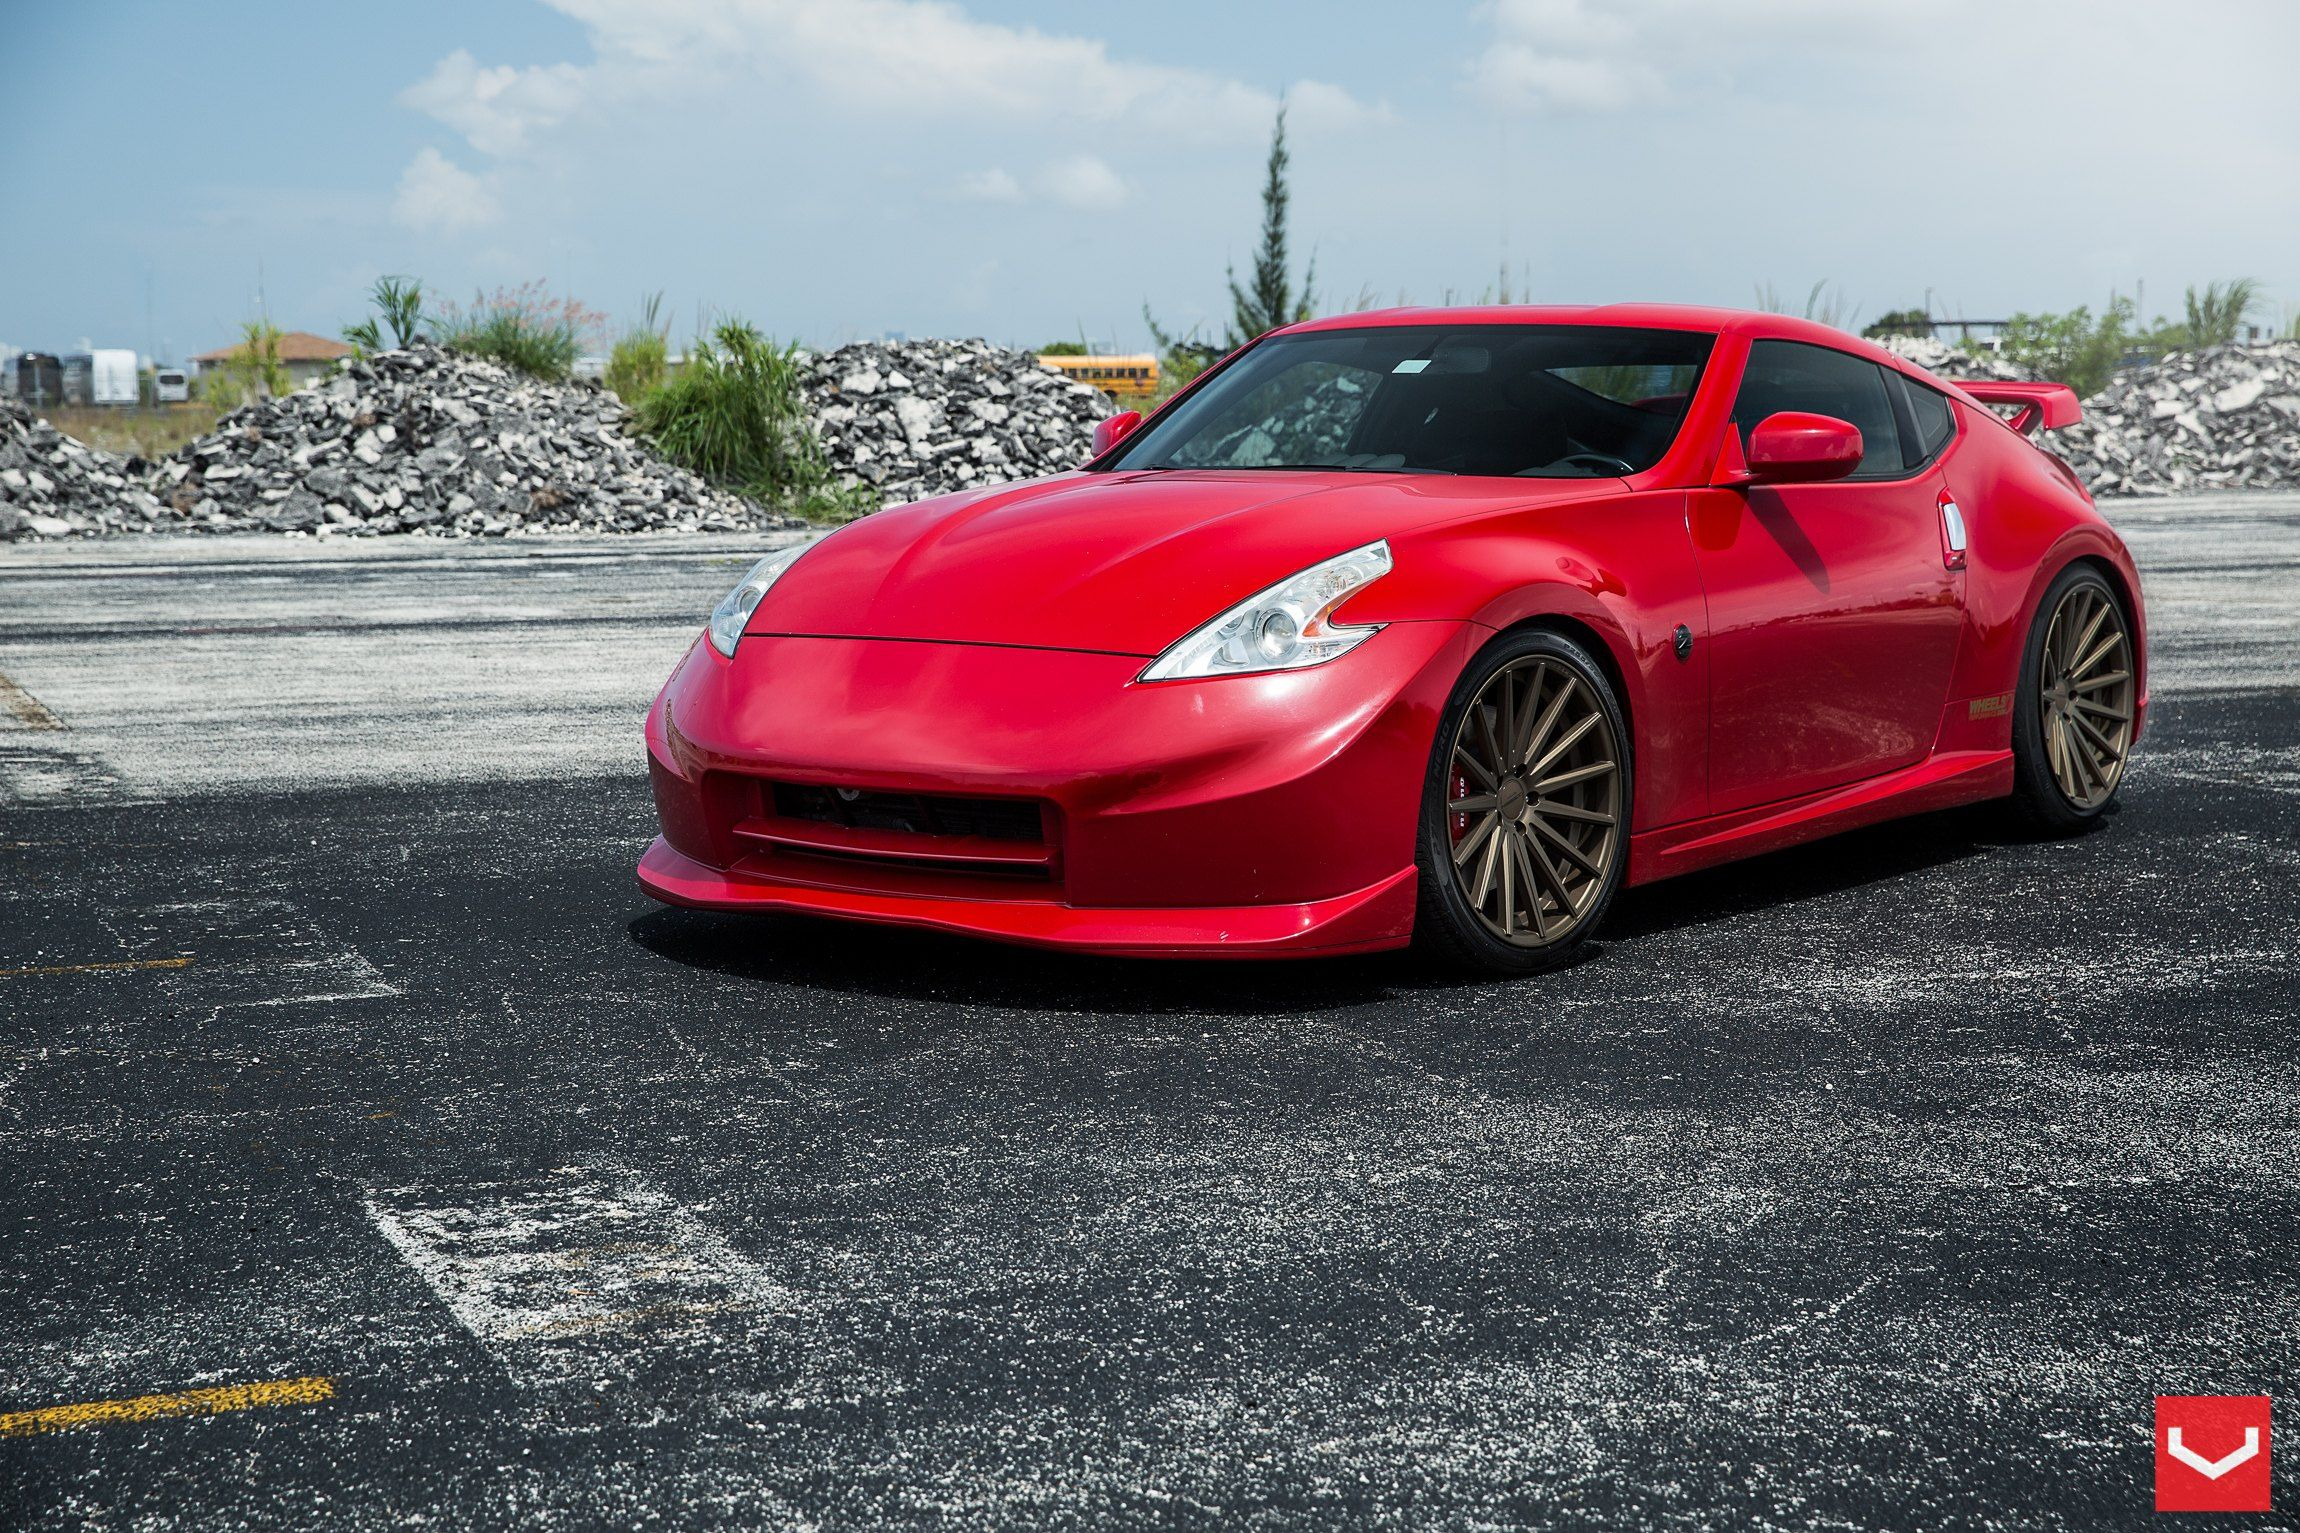 Stanced Red Nissan 370Z on 20 Inch VFS Concave Vossen Rims